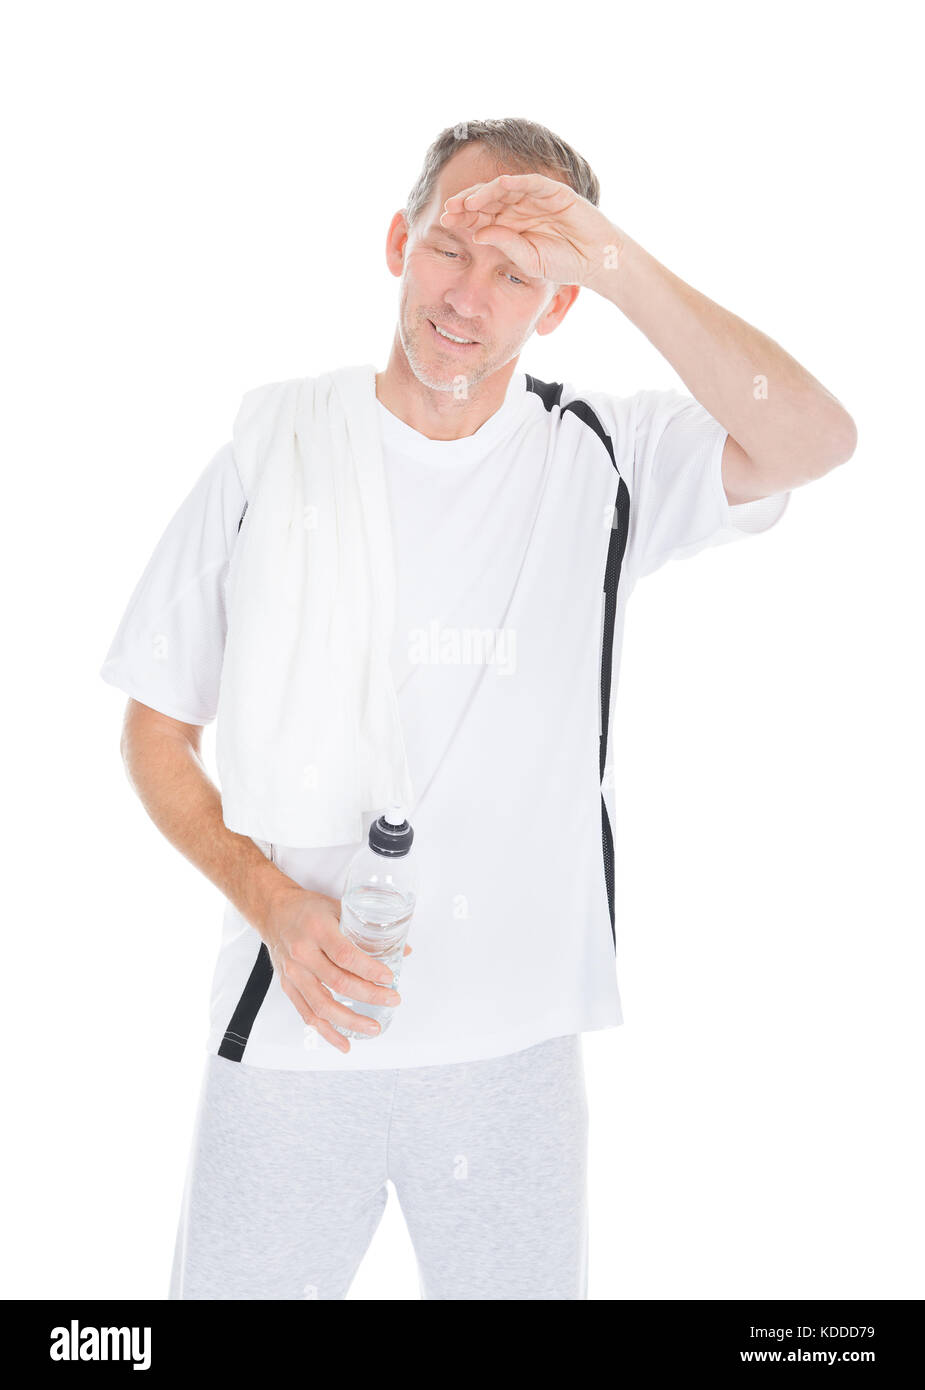 Tired Mature Man Wiping Sweat Holding Water Bottle - Stock Image